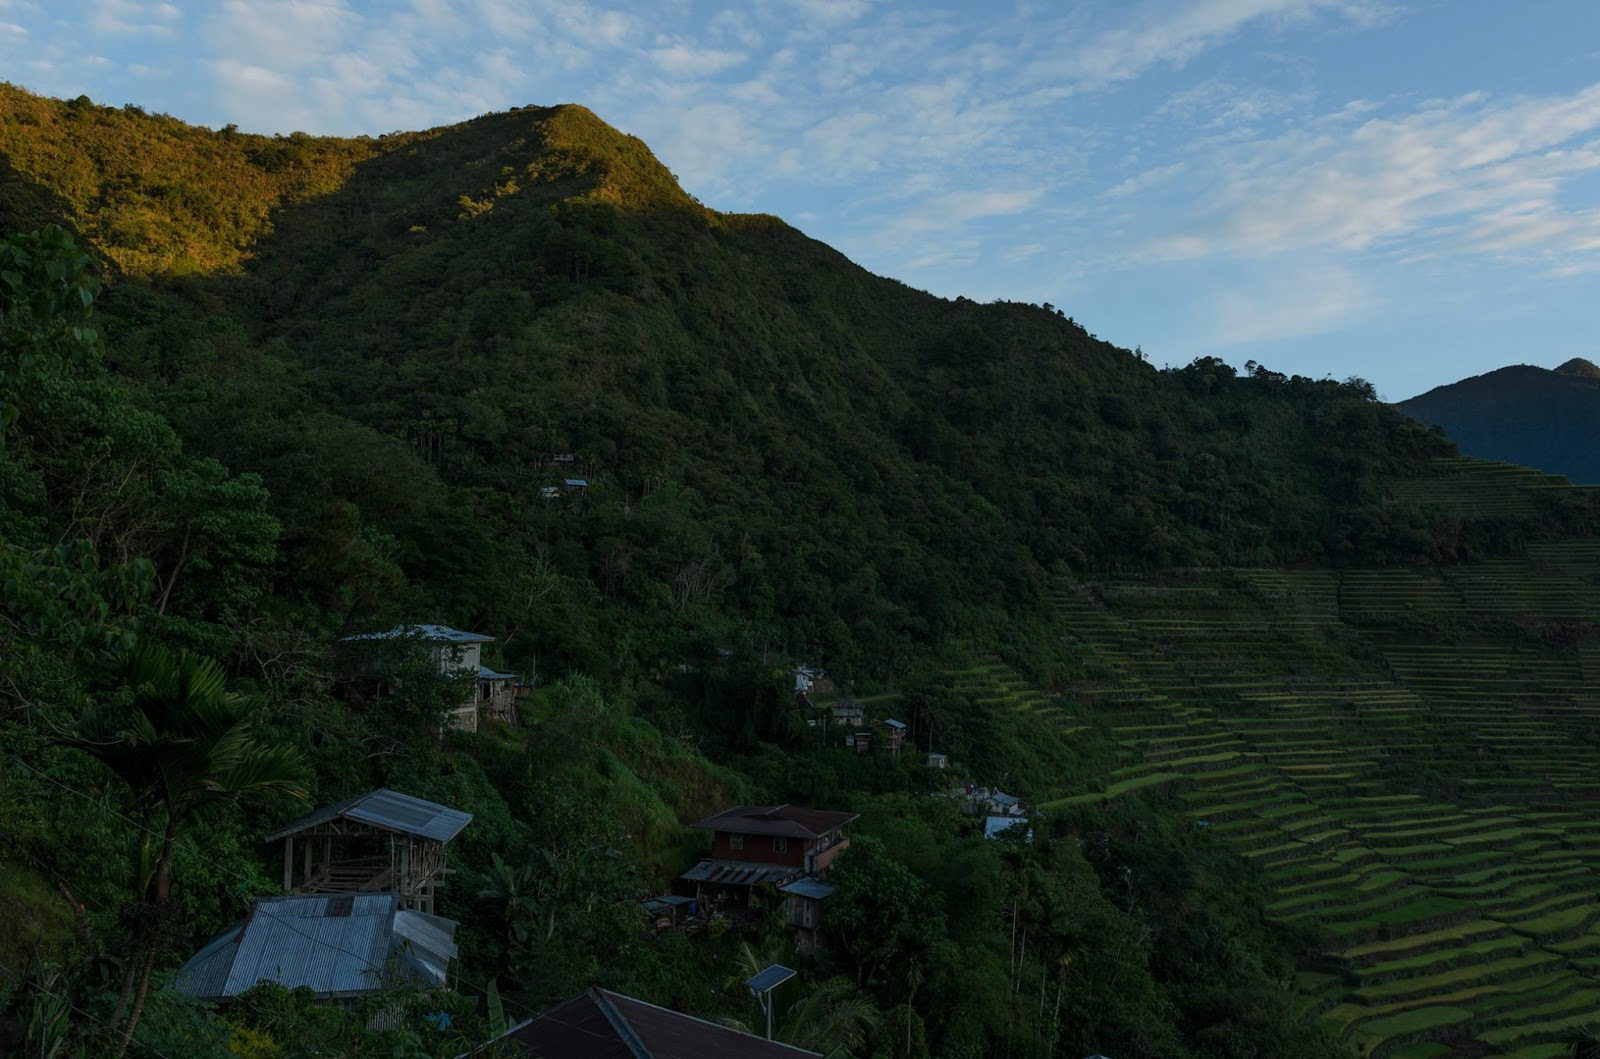 8th Wonder of the World Batad Rice Terraces Ifugao Cordillera Administrative Region Philippines Light Comes In